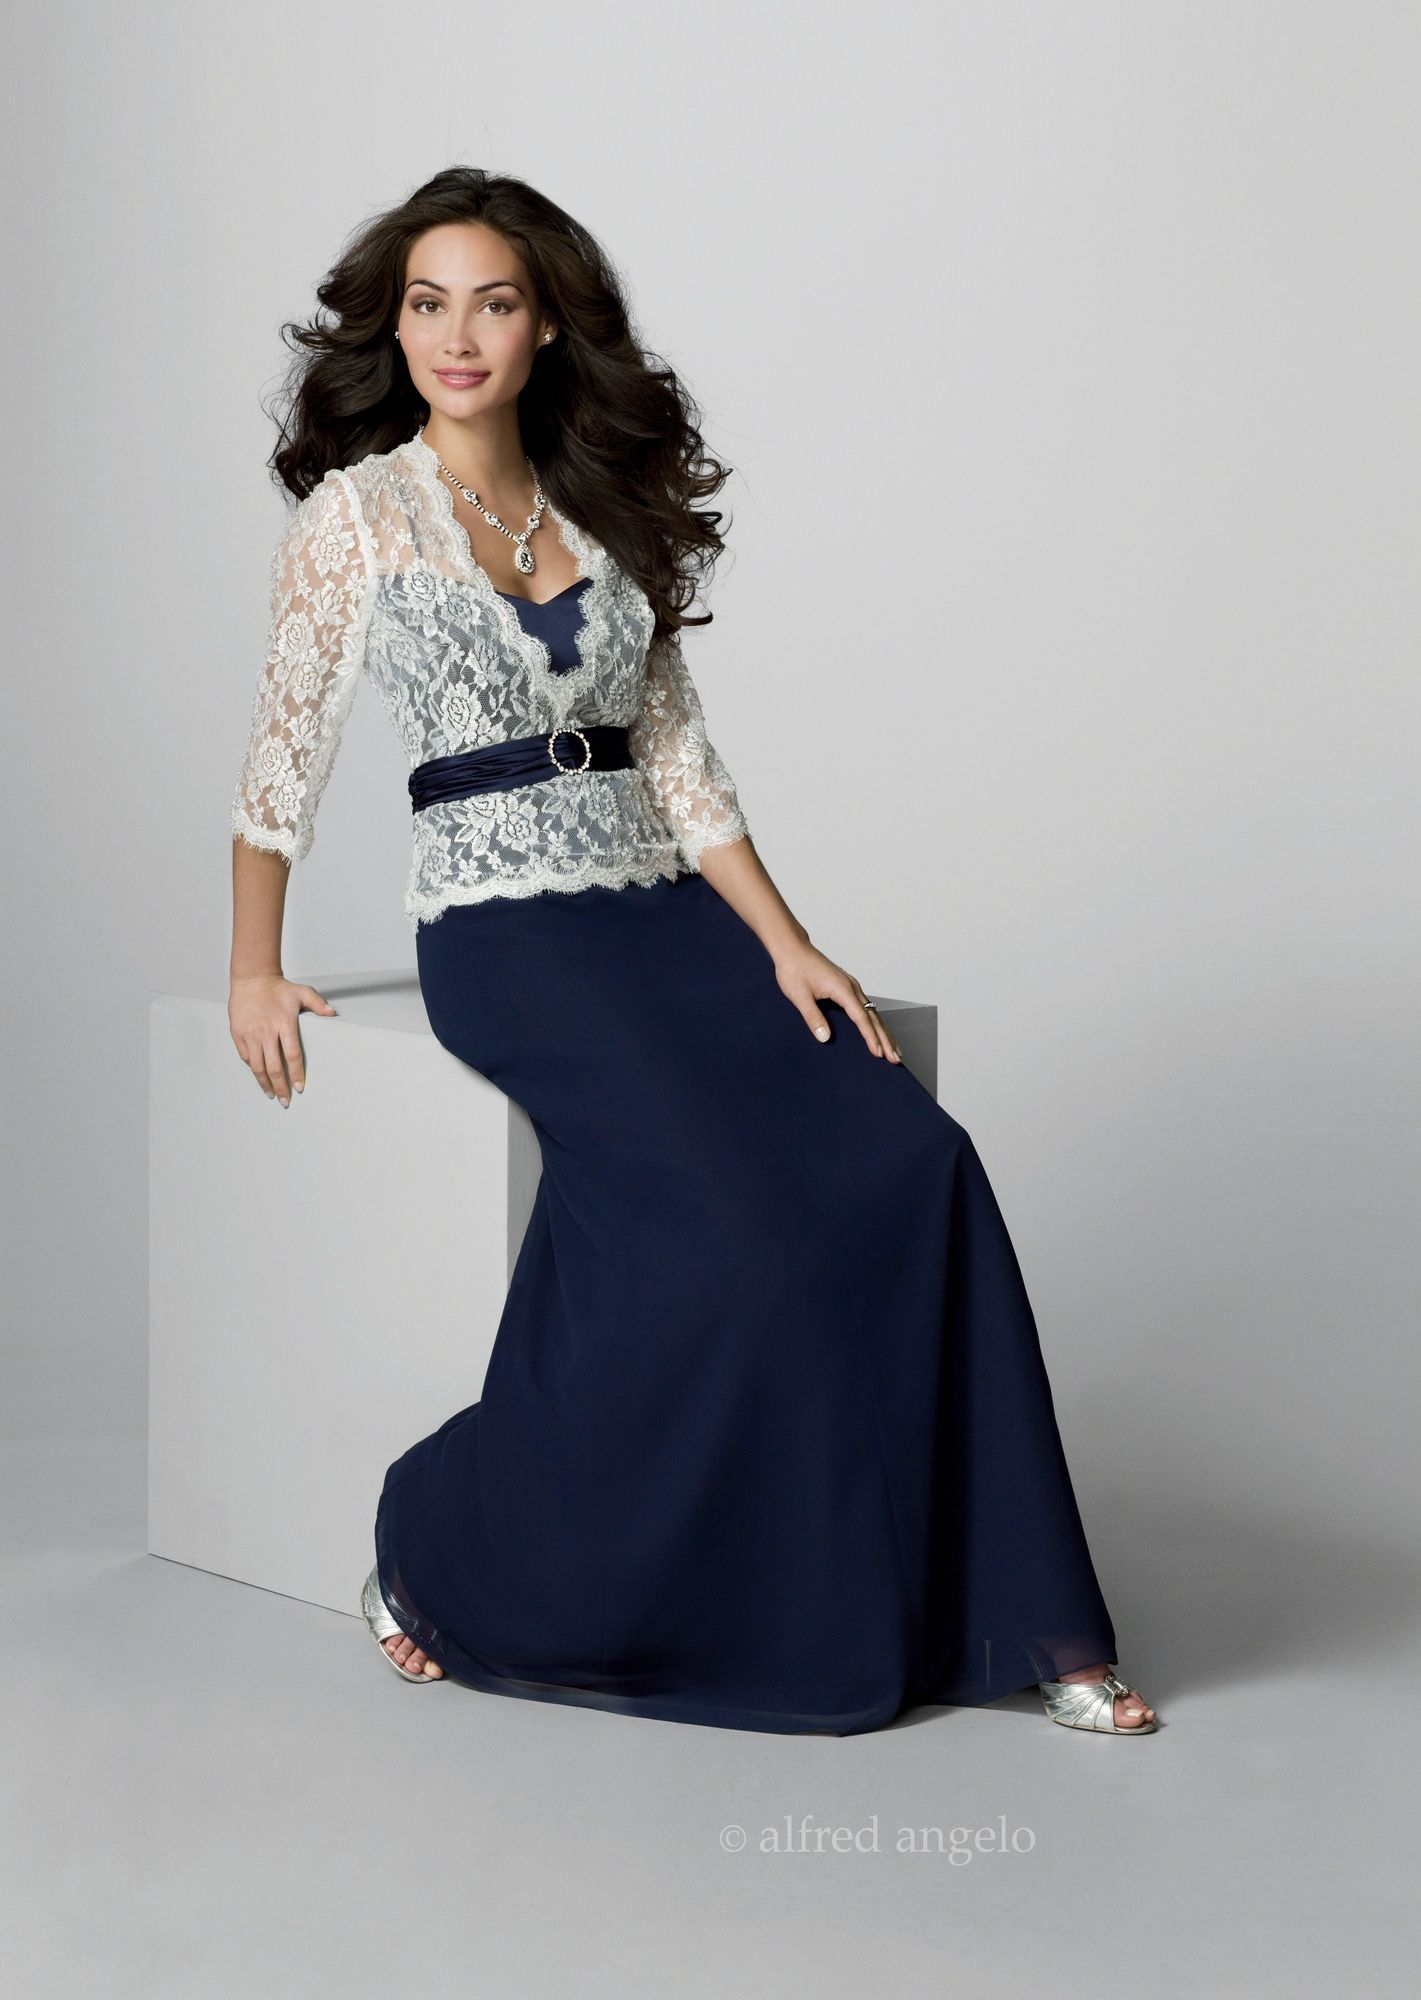 Alfred angelo special occasion separates tops style 7165 7165 alfred angelo special occasion separates tops style 7165 7165 16900 wedding ombrellifo Choice Image